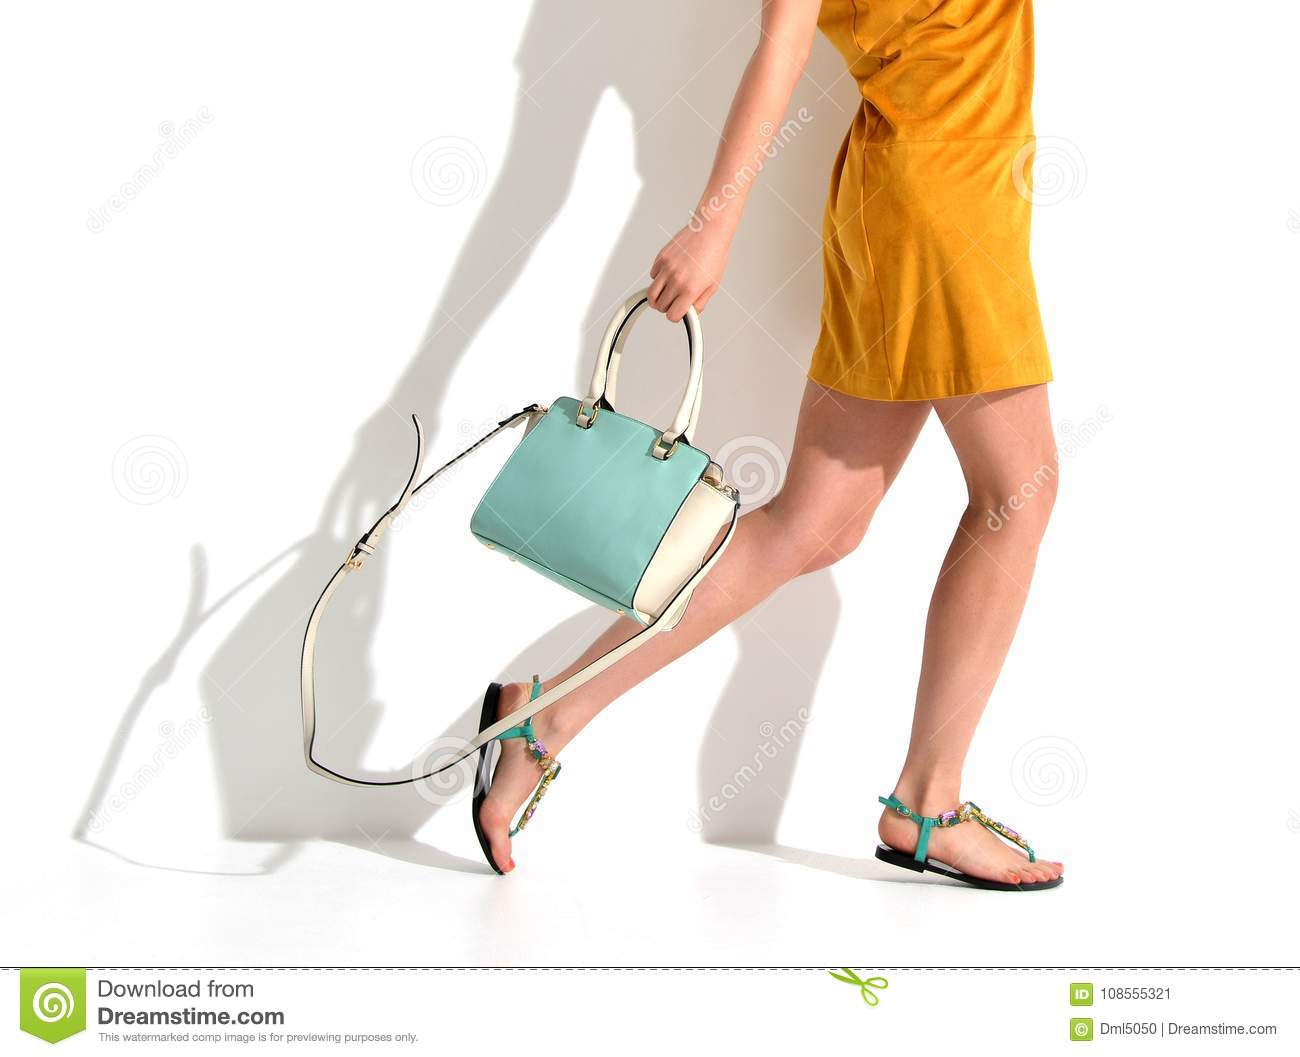 45f4bb75 Beautiful female legs wearing summer shoes in brown yellow designers dress  and blue mint woman clutch bag on white background